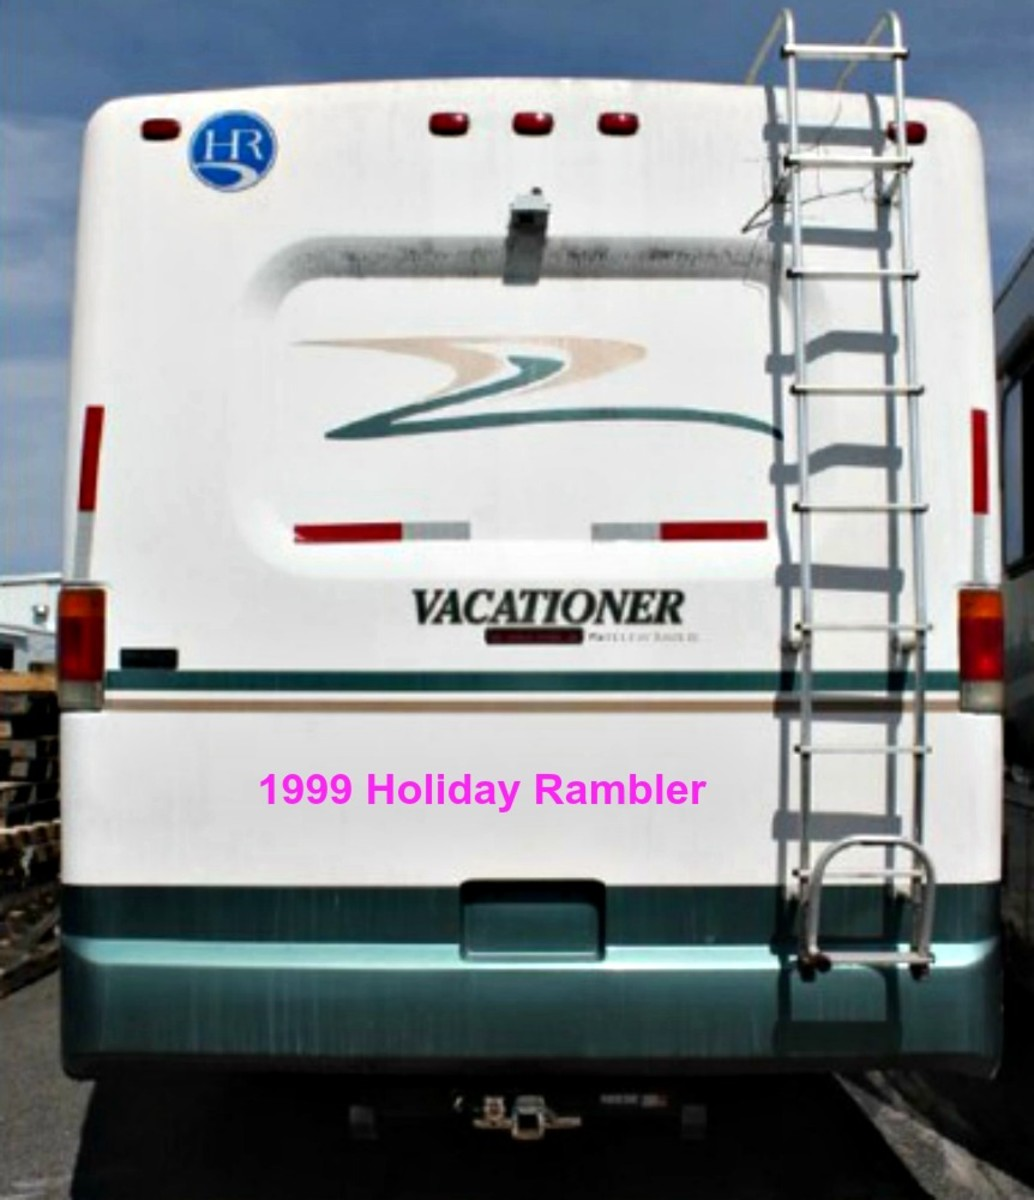 The 1999 Holiday Rambler Is A Great Coach to Own